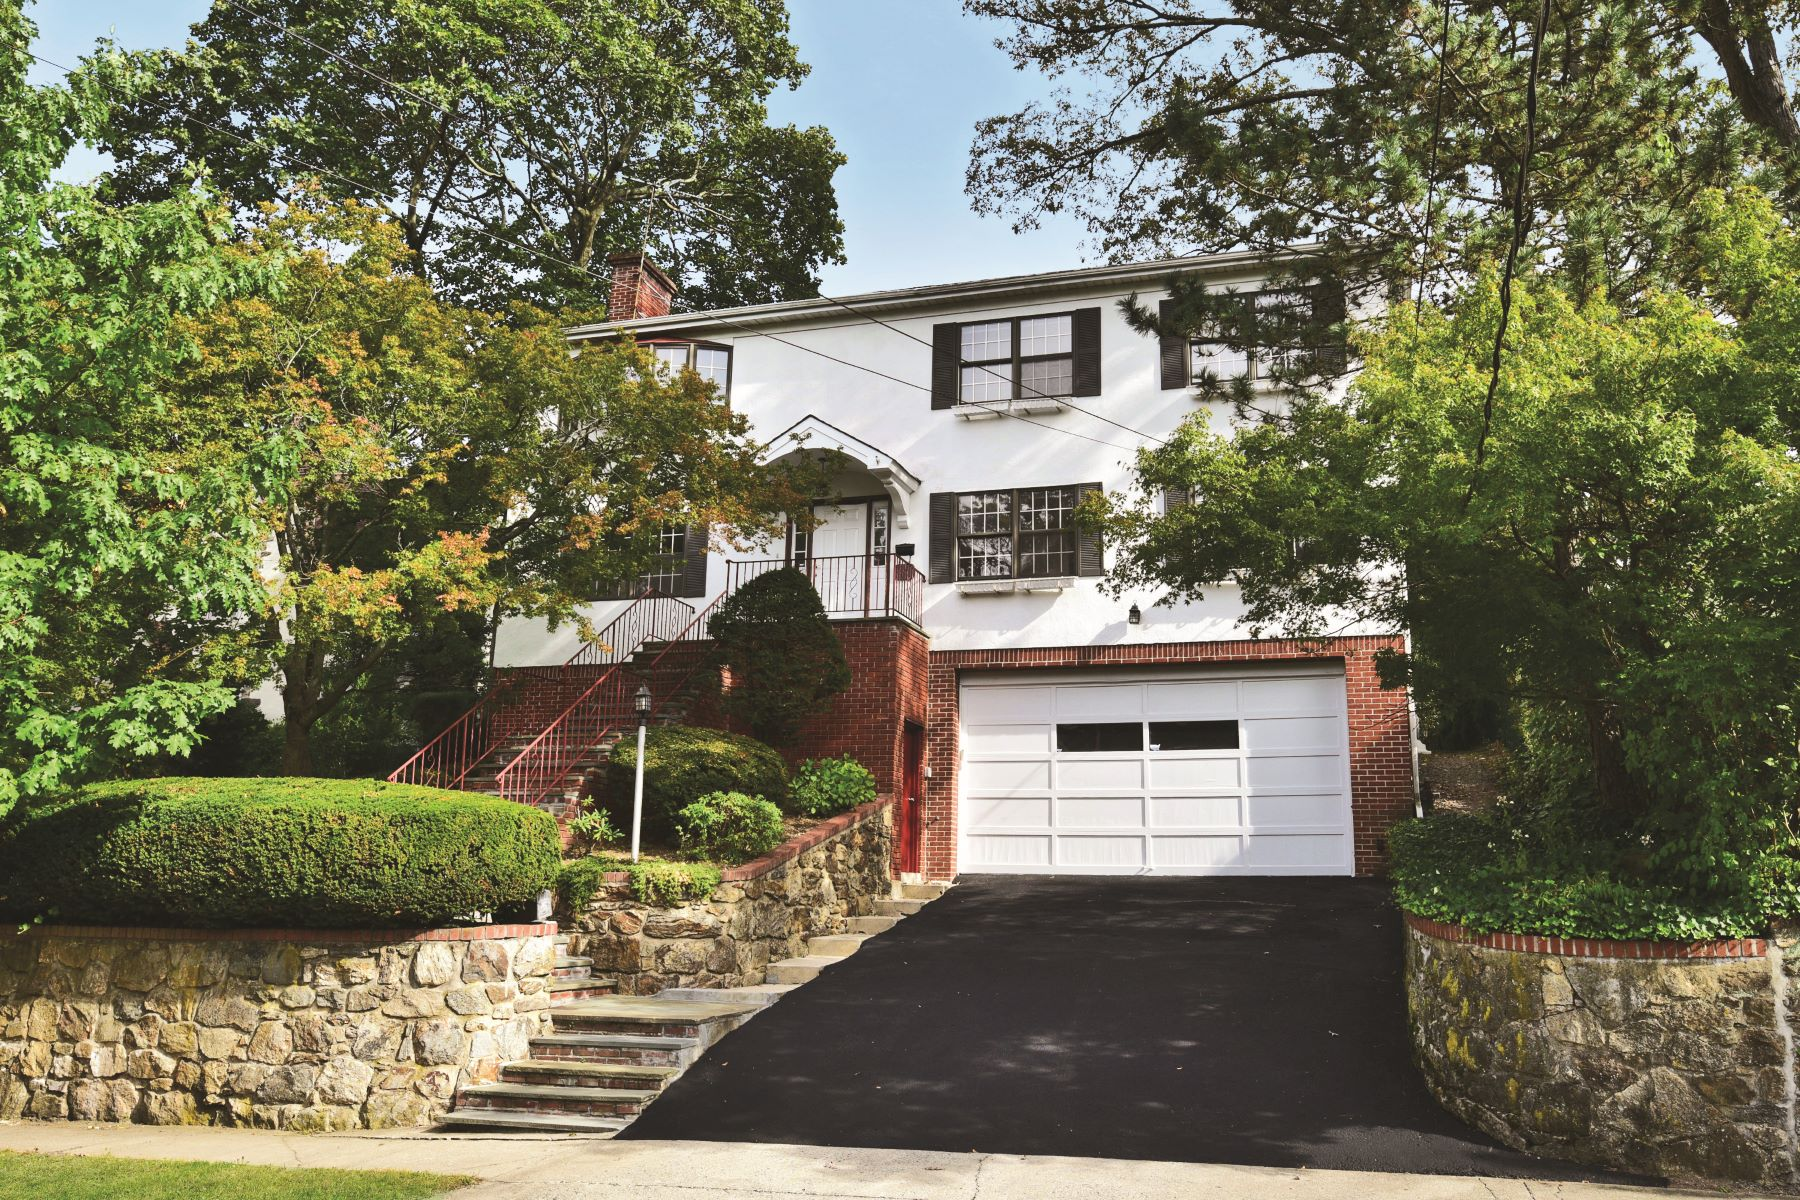 Single Family Home for Rent at 27 Concord Avenue 27 Concord Avenue Larchmont, New York 10538 United States